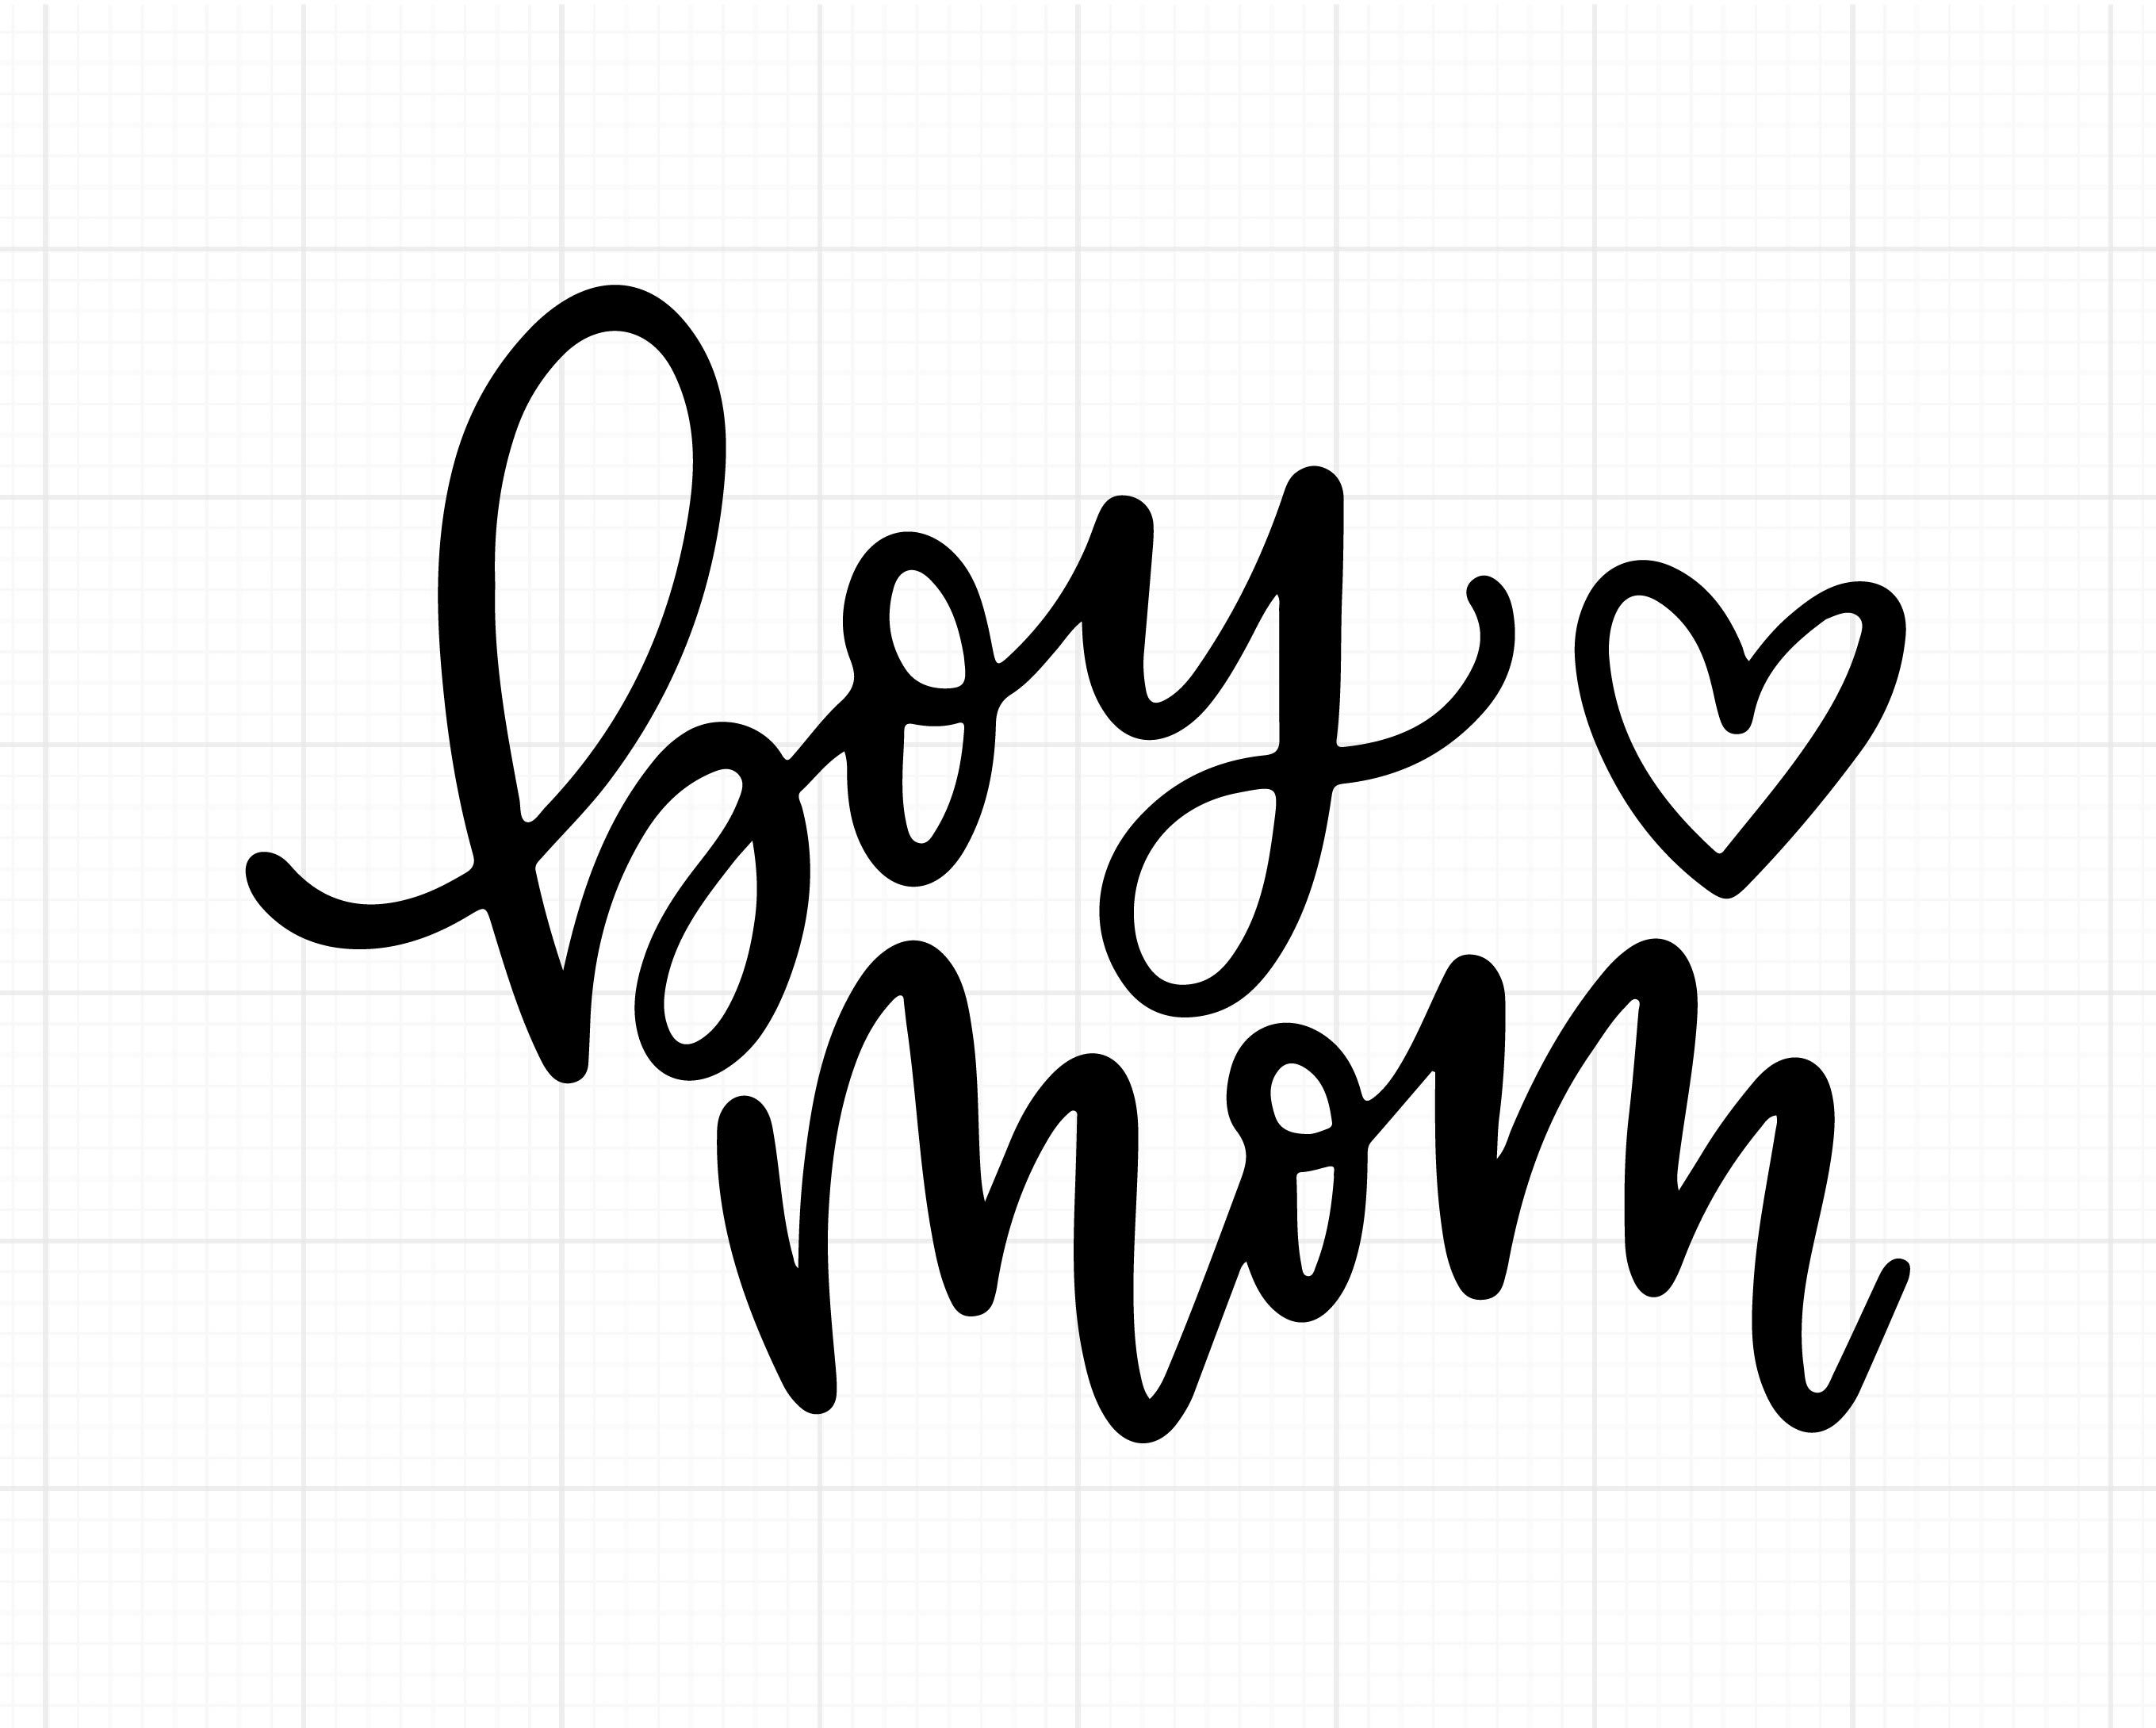 Free This year, the day falls on may 10, which is the second sunday of the month. Boy Mom Svg Boy Mom Boy Mom Script Heart Svg Mom Svg Mothers Day Svg Boy Mom Png Boy Mom Baby Svg Bad Moms Club SVG, PNG, EPS, DXF File